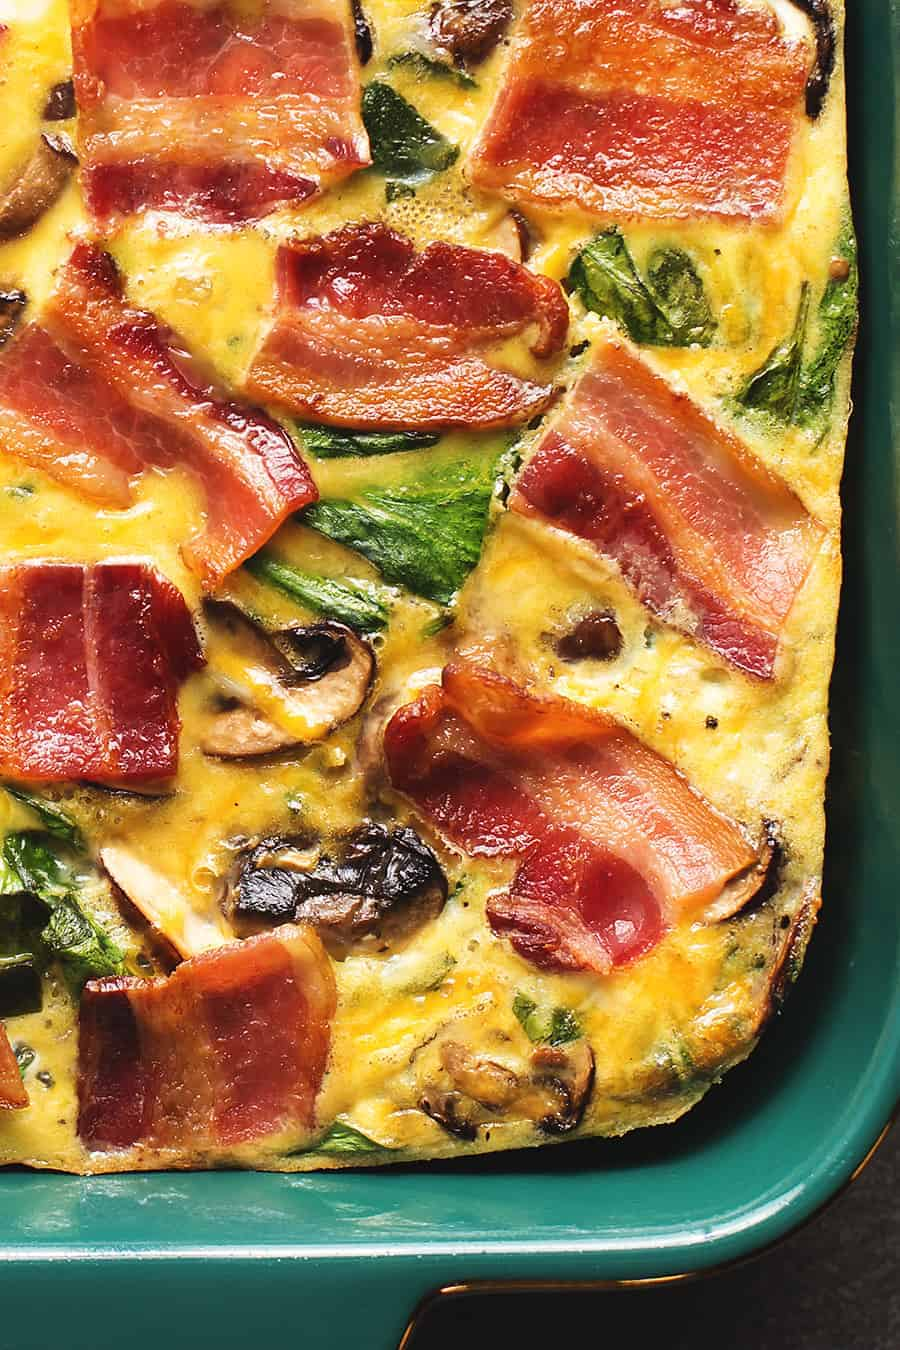 Low Carb Breakfast Casserole - Best Keto Breakfast Casserole Recipes for Ketogenic Diet. Try these amazing Keto breakfast casserole recipes with bacon, cream cheese, spinach or with ham. Great low carb make ahead breakfast, also some slow cooker recipes. #keto #ketogenic #ketorecipes #diet #food #lowcarb